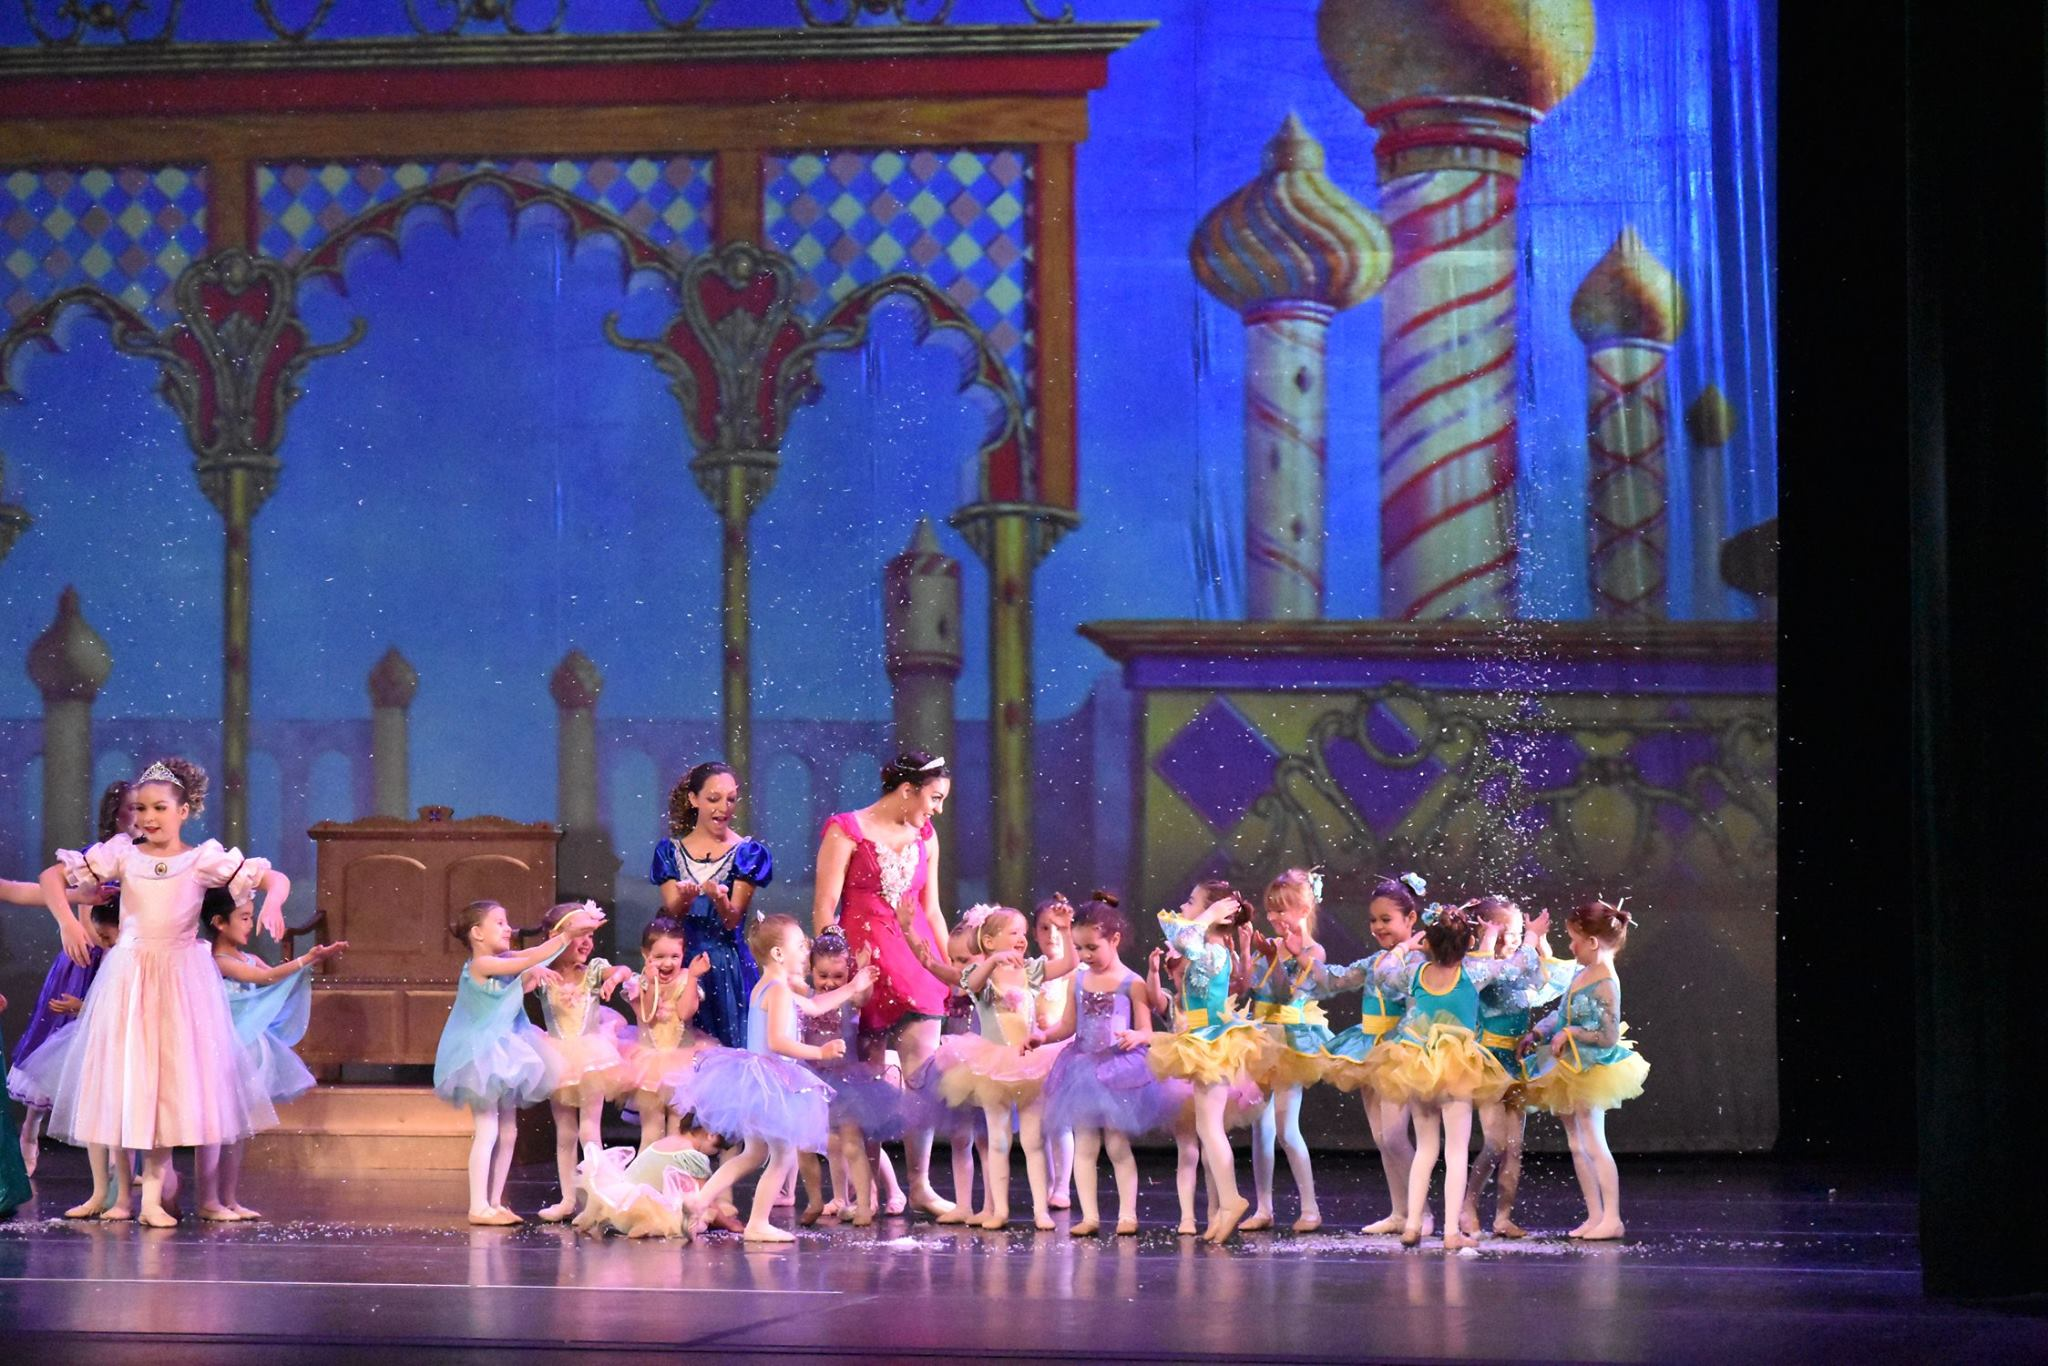 The Petite Nutcracker - The Petite Nutcracker is our brilliant miniature production of the beloved classic ballet